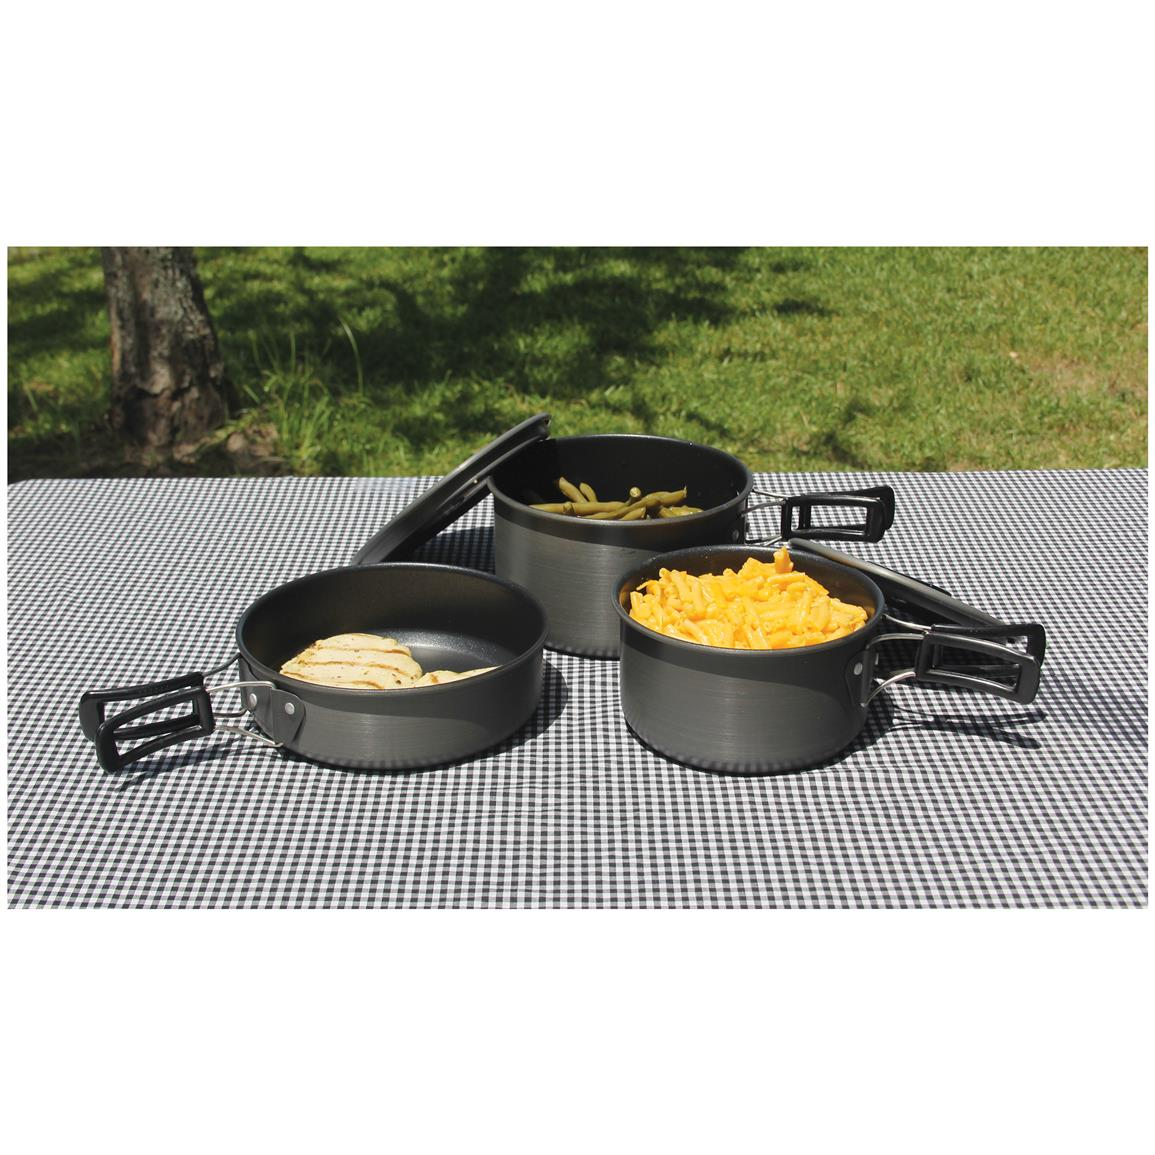 Triple coat Quantum2 non-stick surface